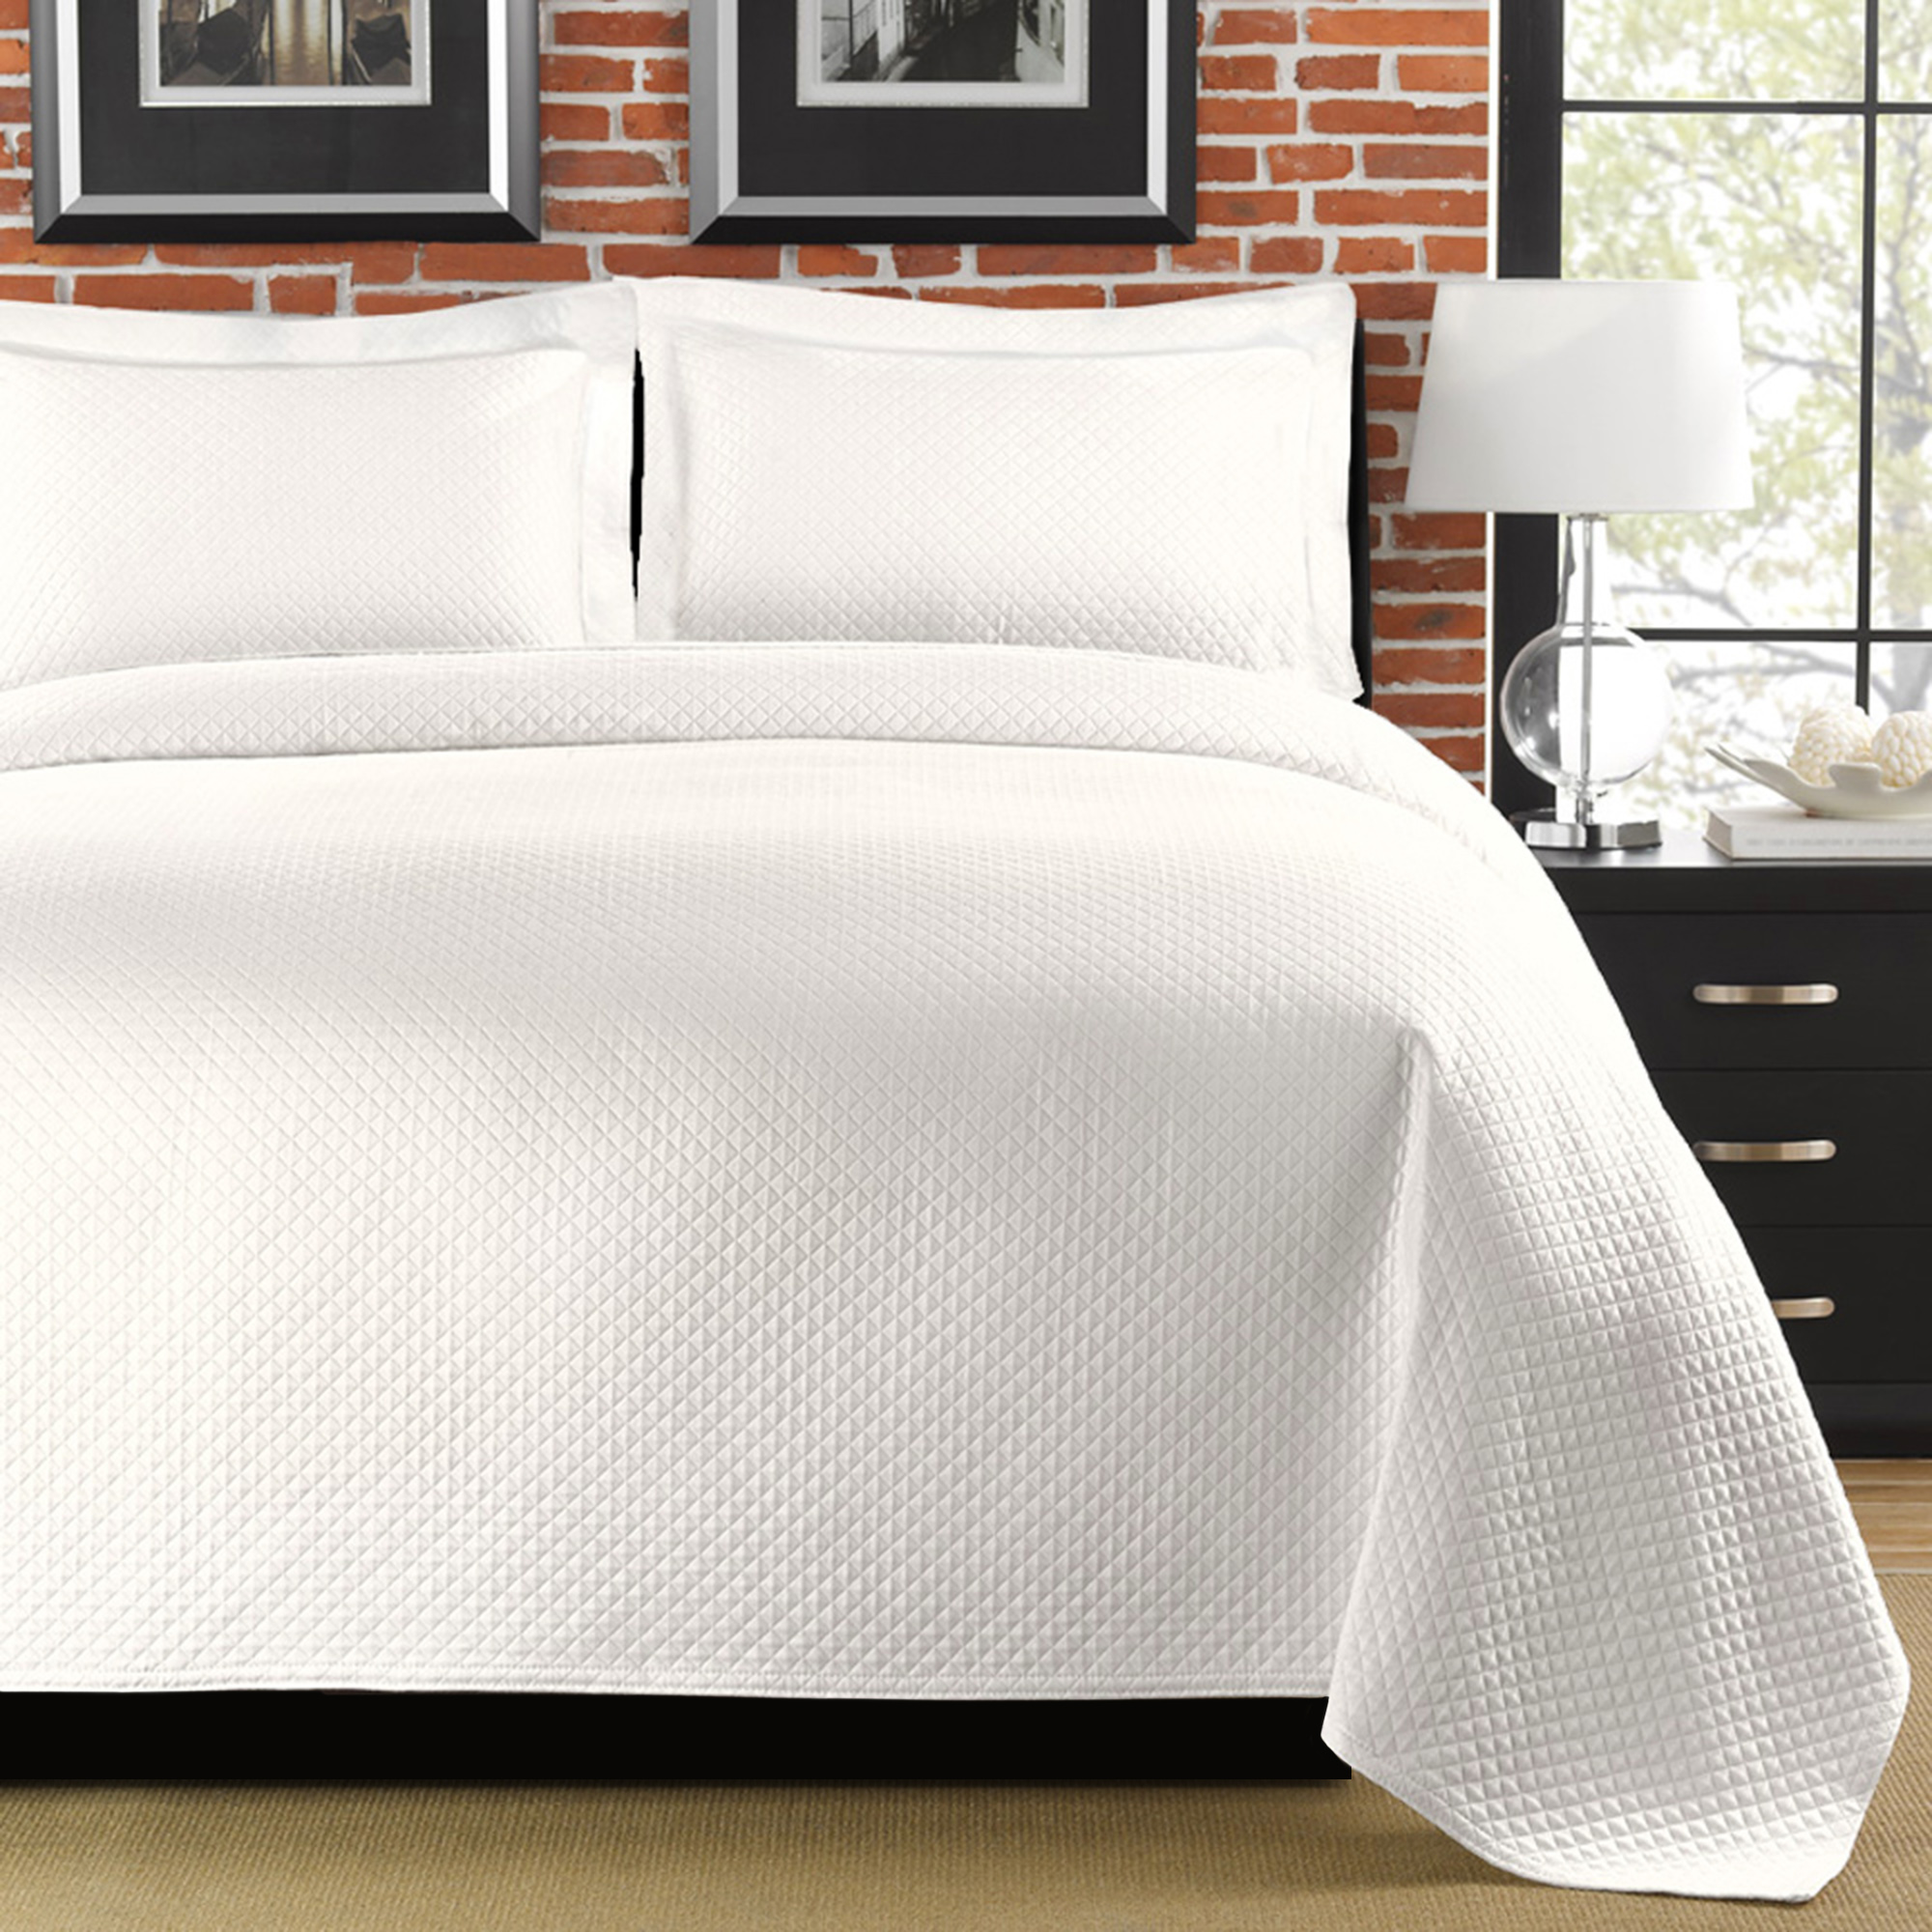 032672501196 Upc Lamont Home Diamante King Coverlet